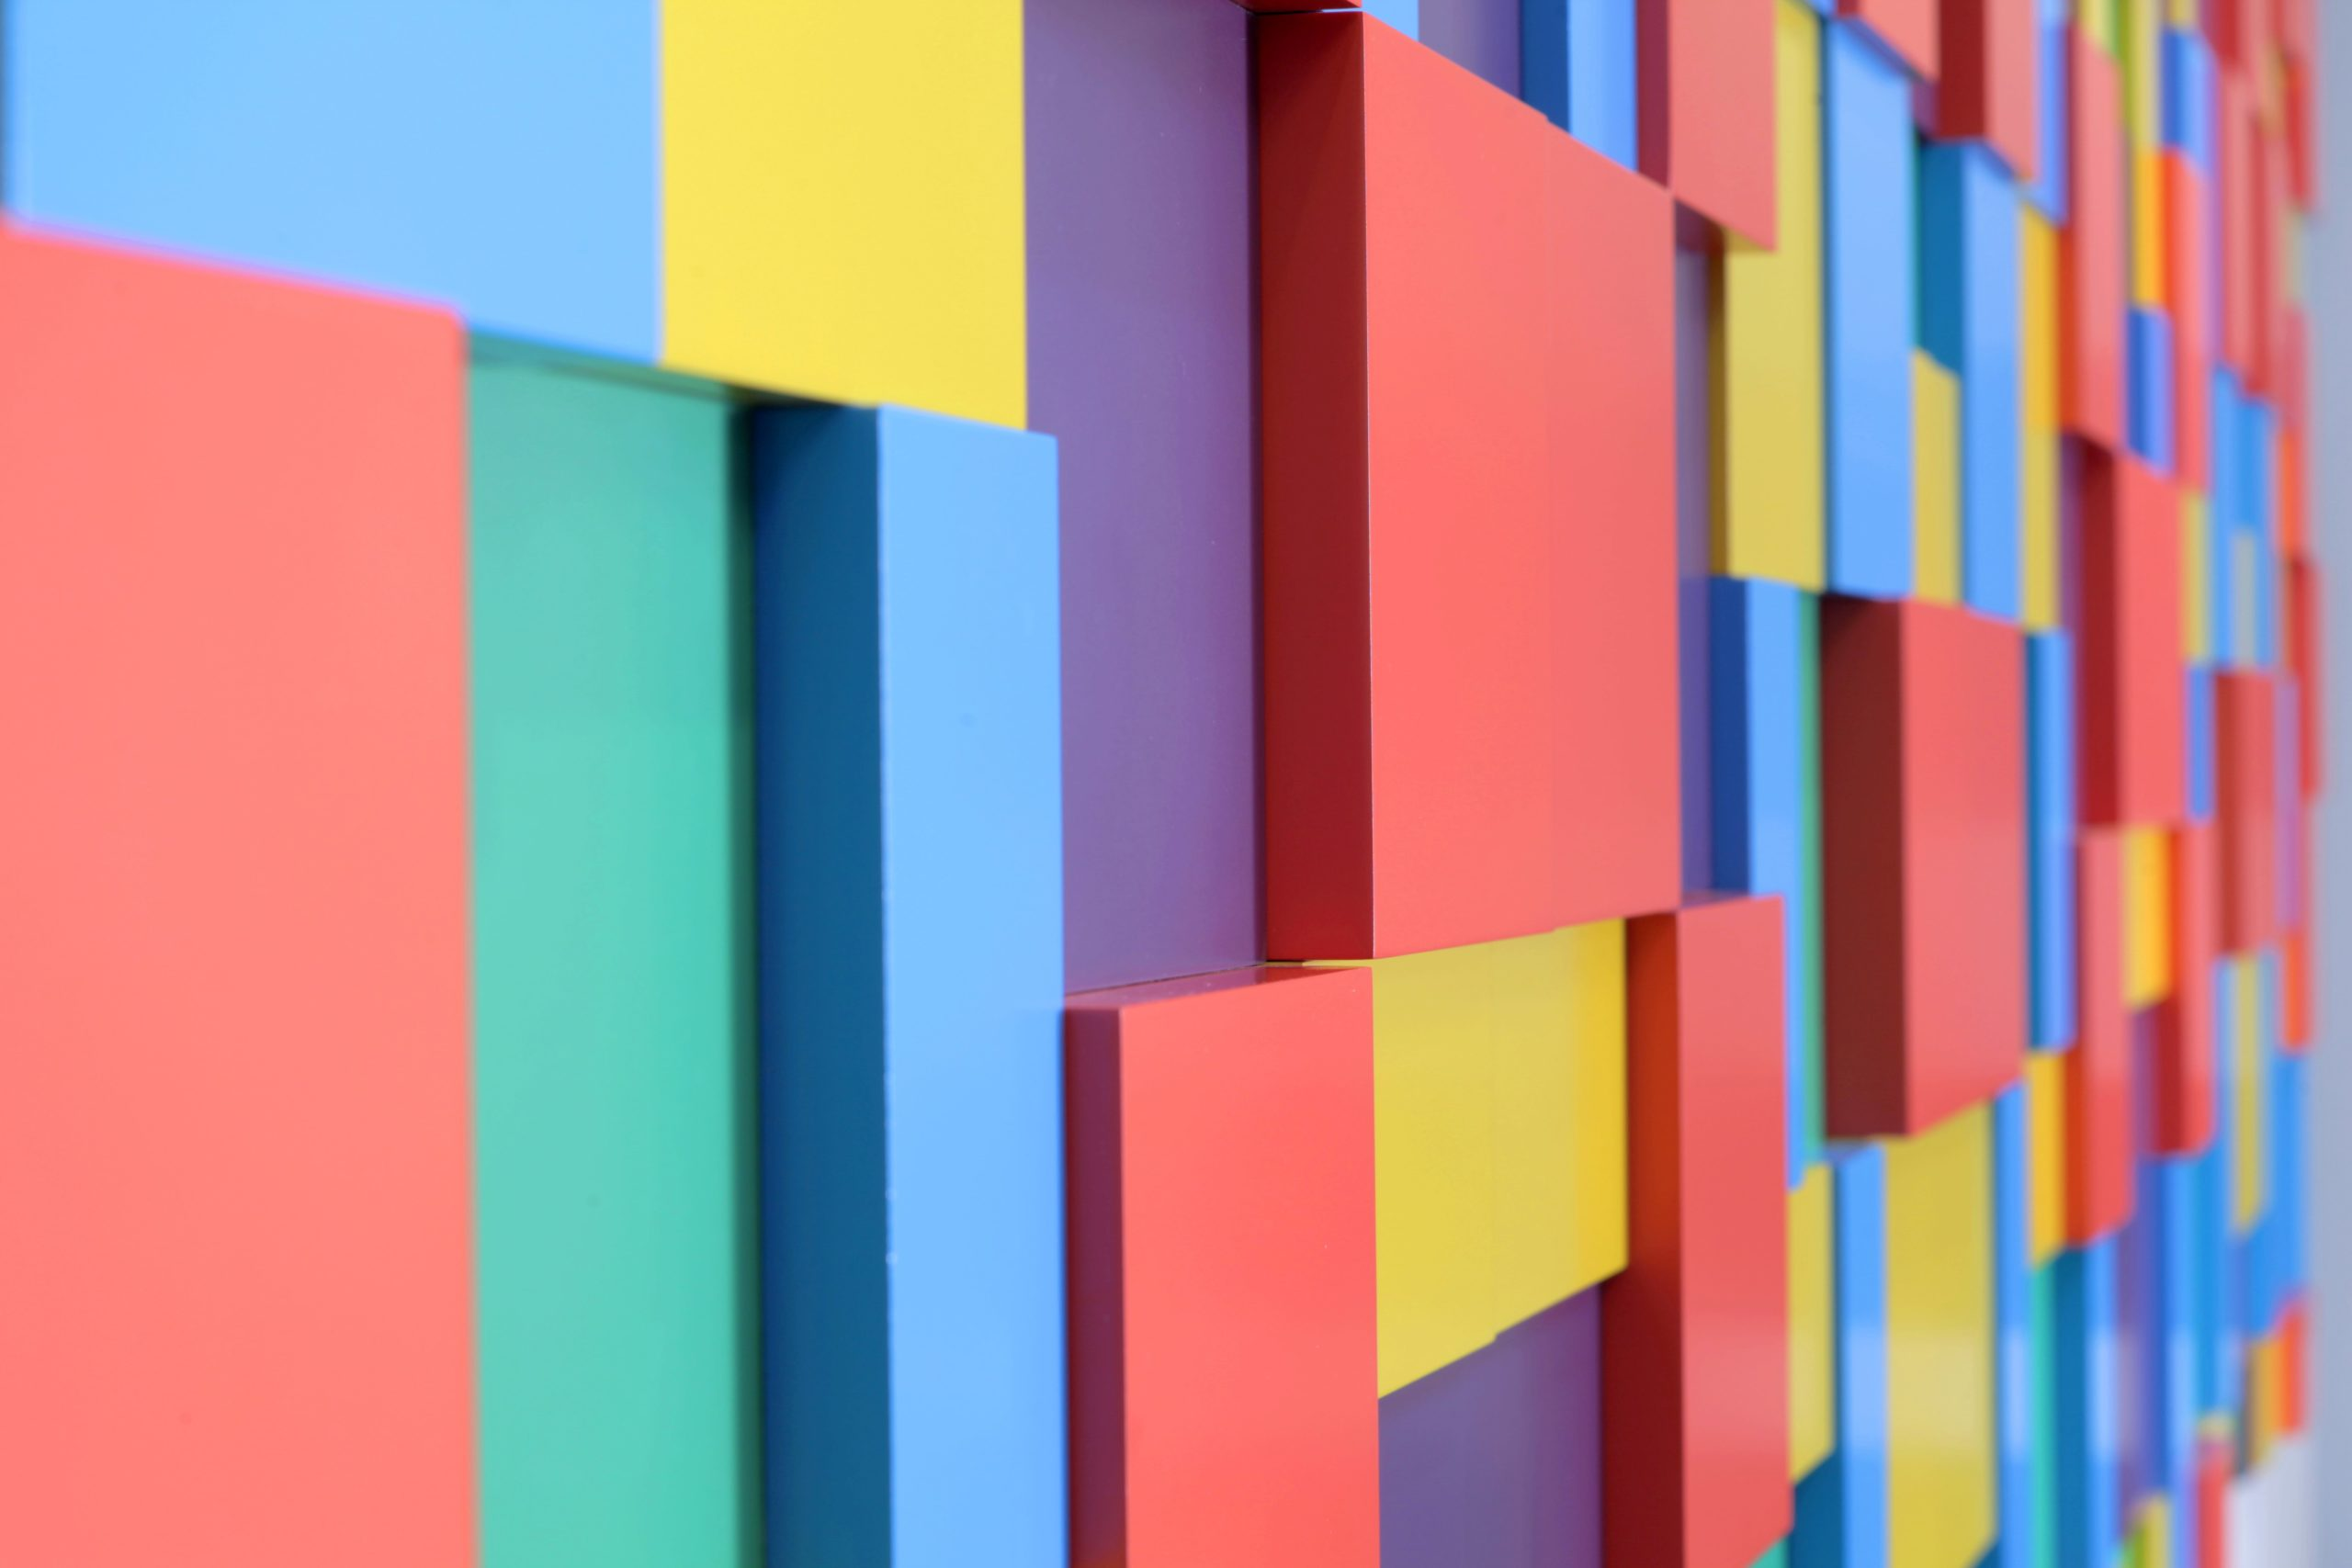 Does the colour of your office walls promote neurodiversity?